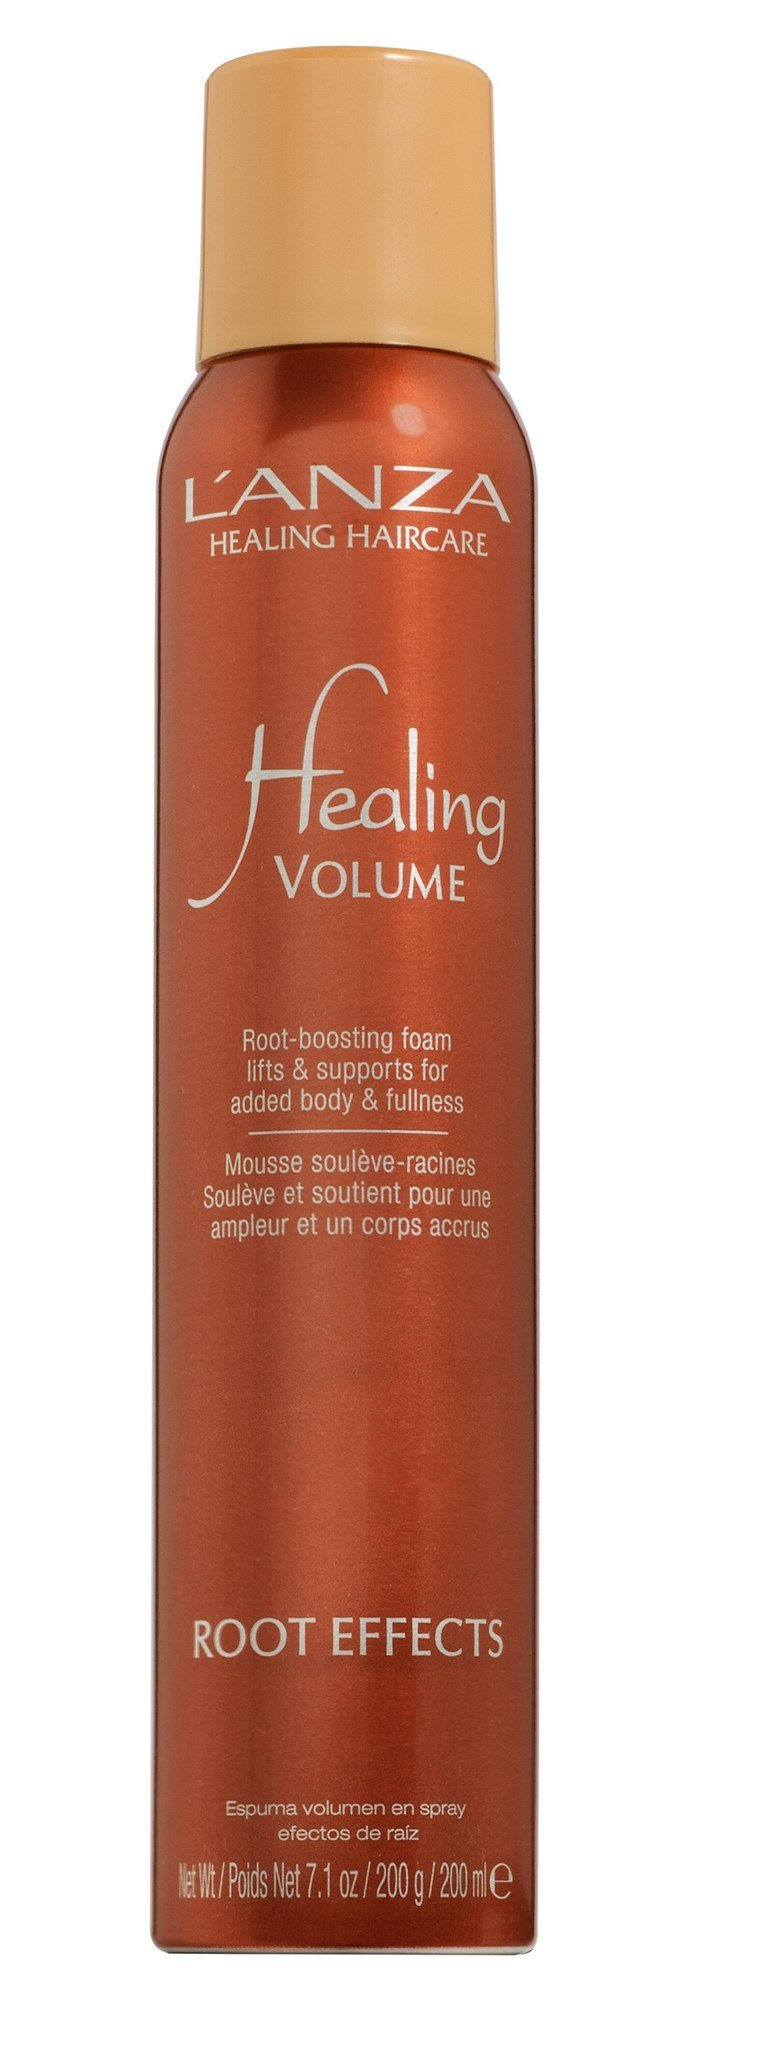 200ml Lanza Healing Volume Root Effects